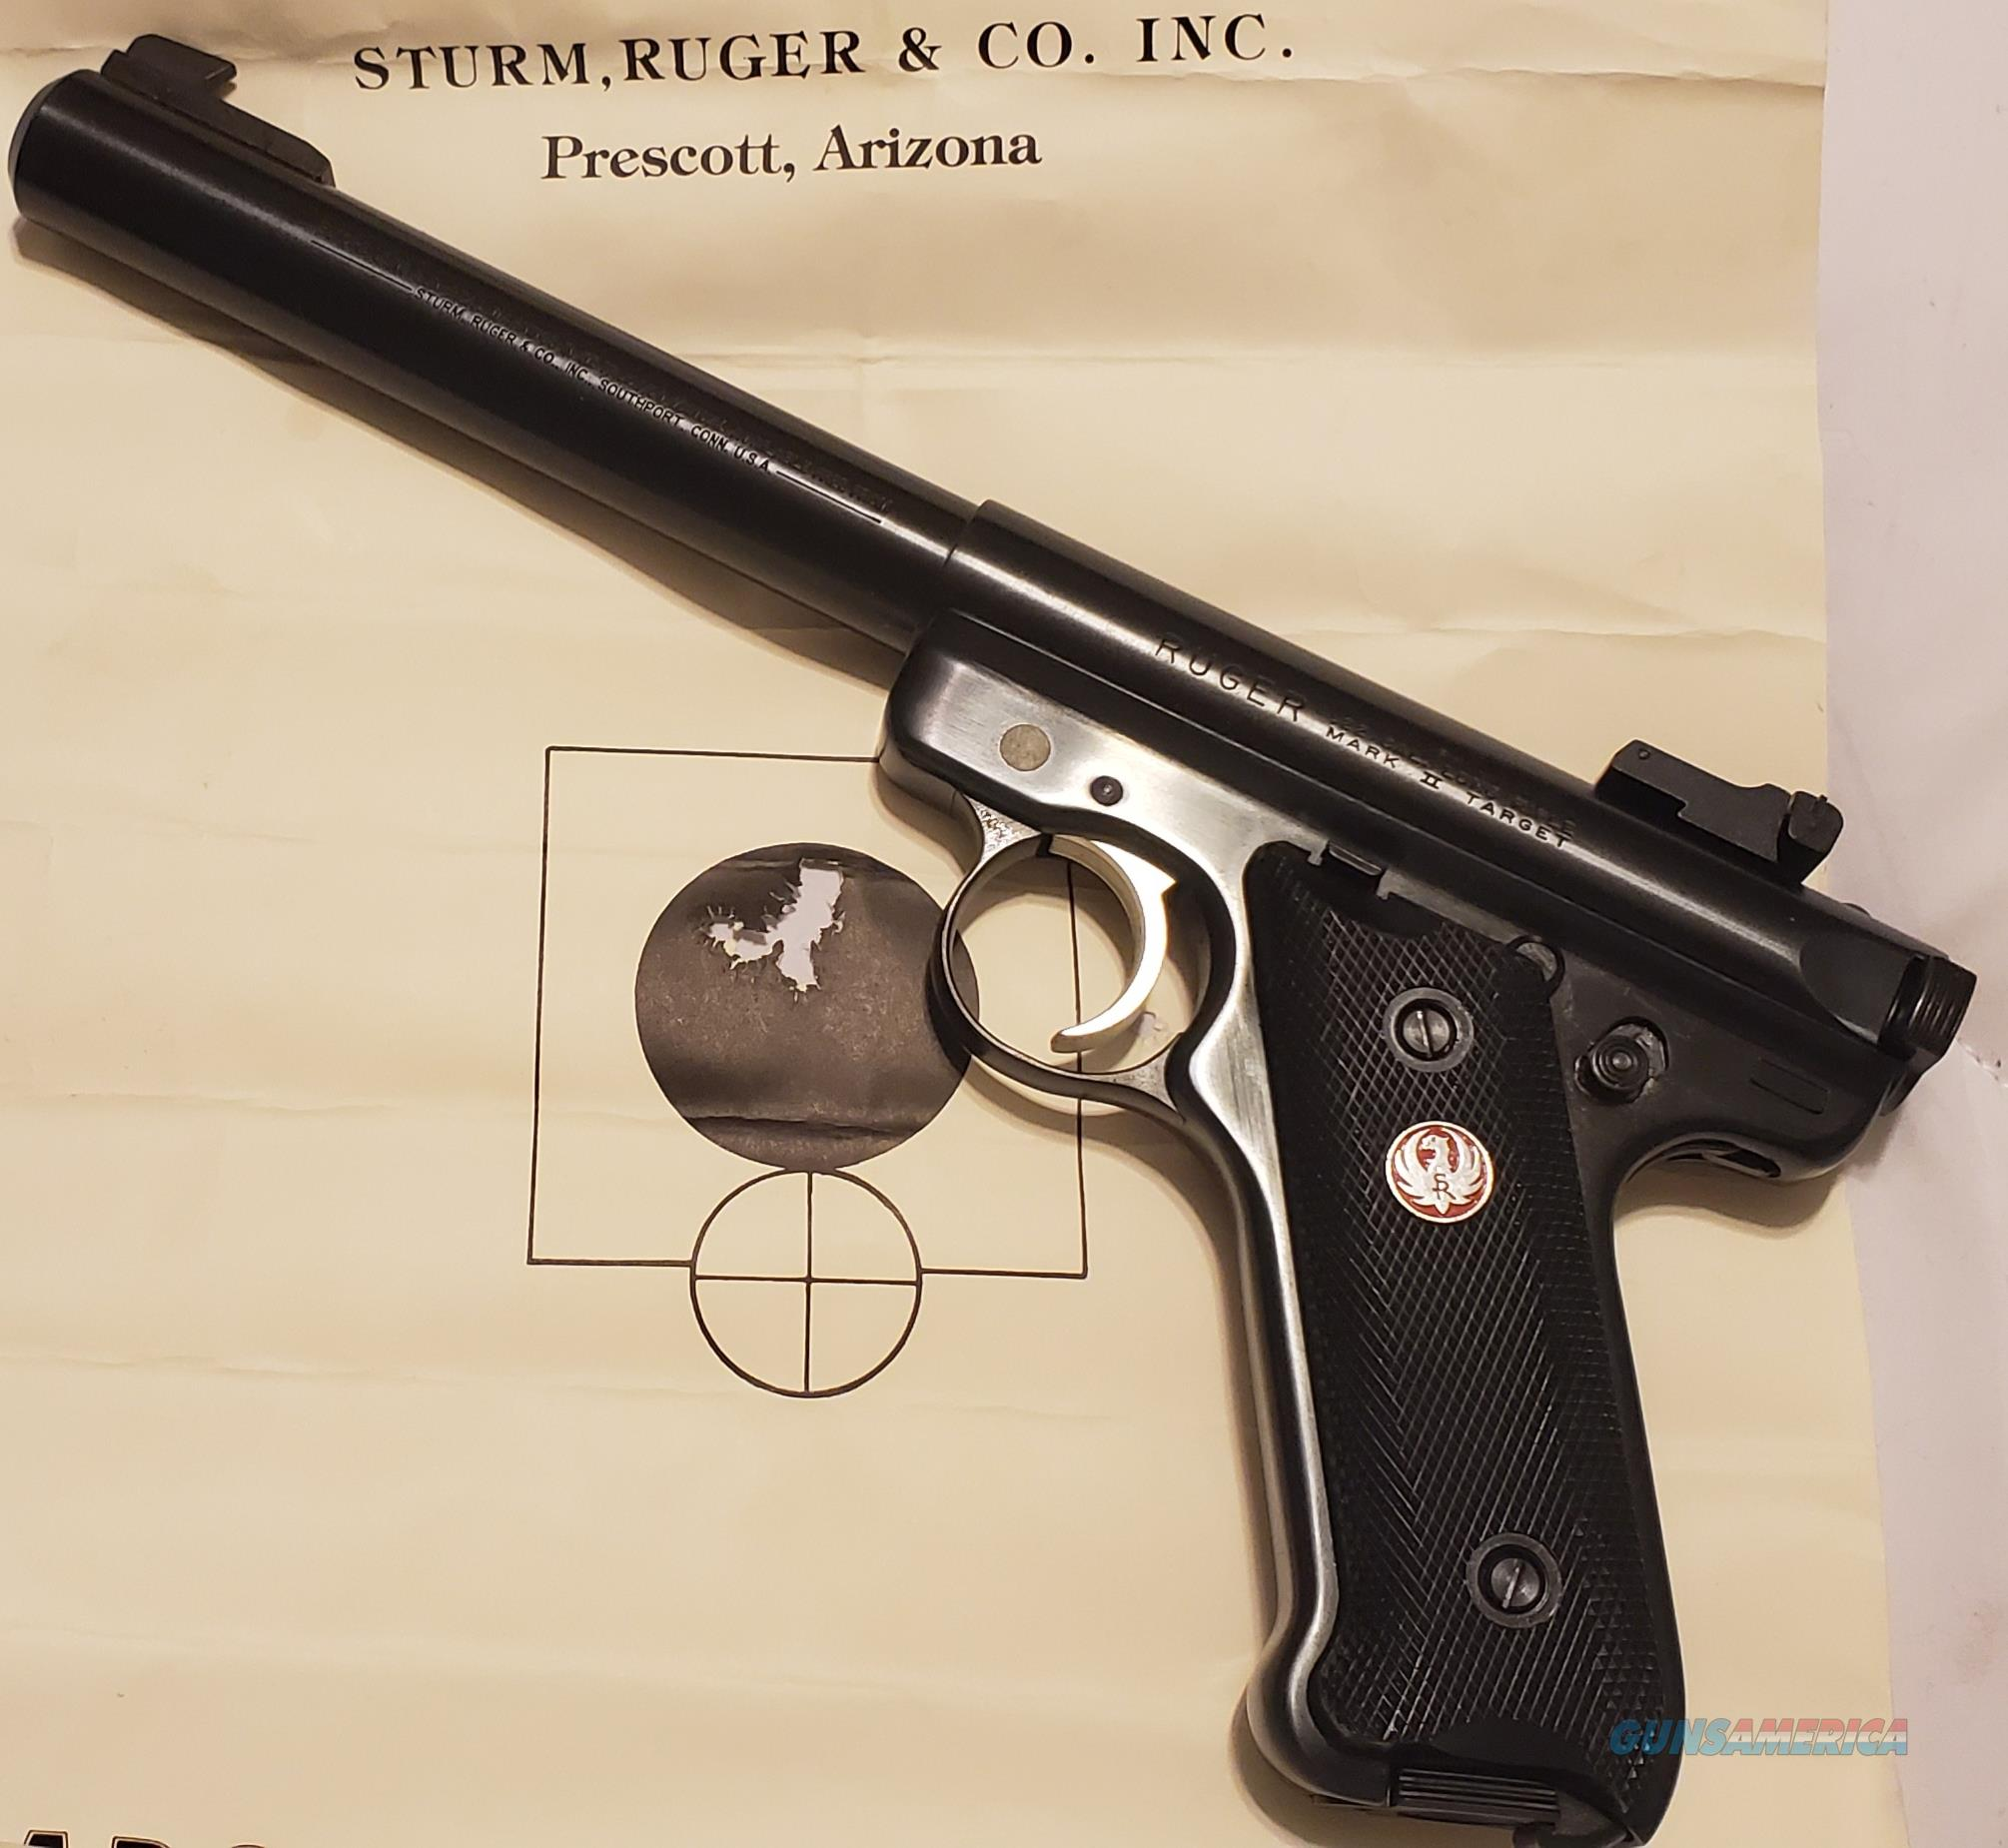 """Ruger MKII Government Target Model 6 7/8"""" BULL 22 LR  New!  LAYAWAY OPTION  00175  Guns > Pistols > Ruger Semi-Auto Pistols > Mark I/II/III/IV Family"""